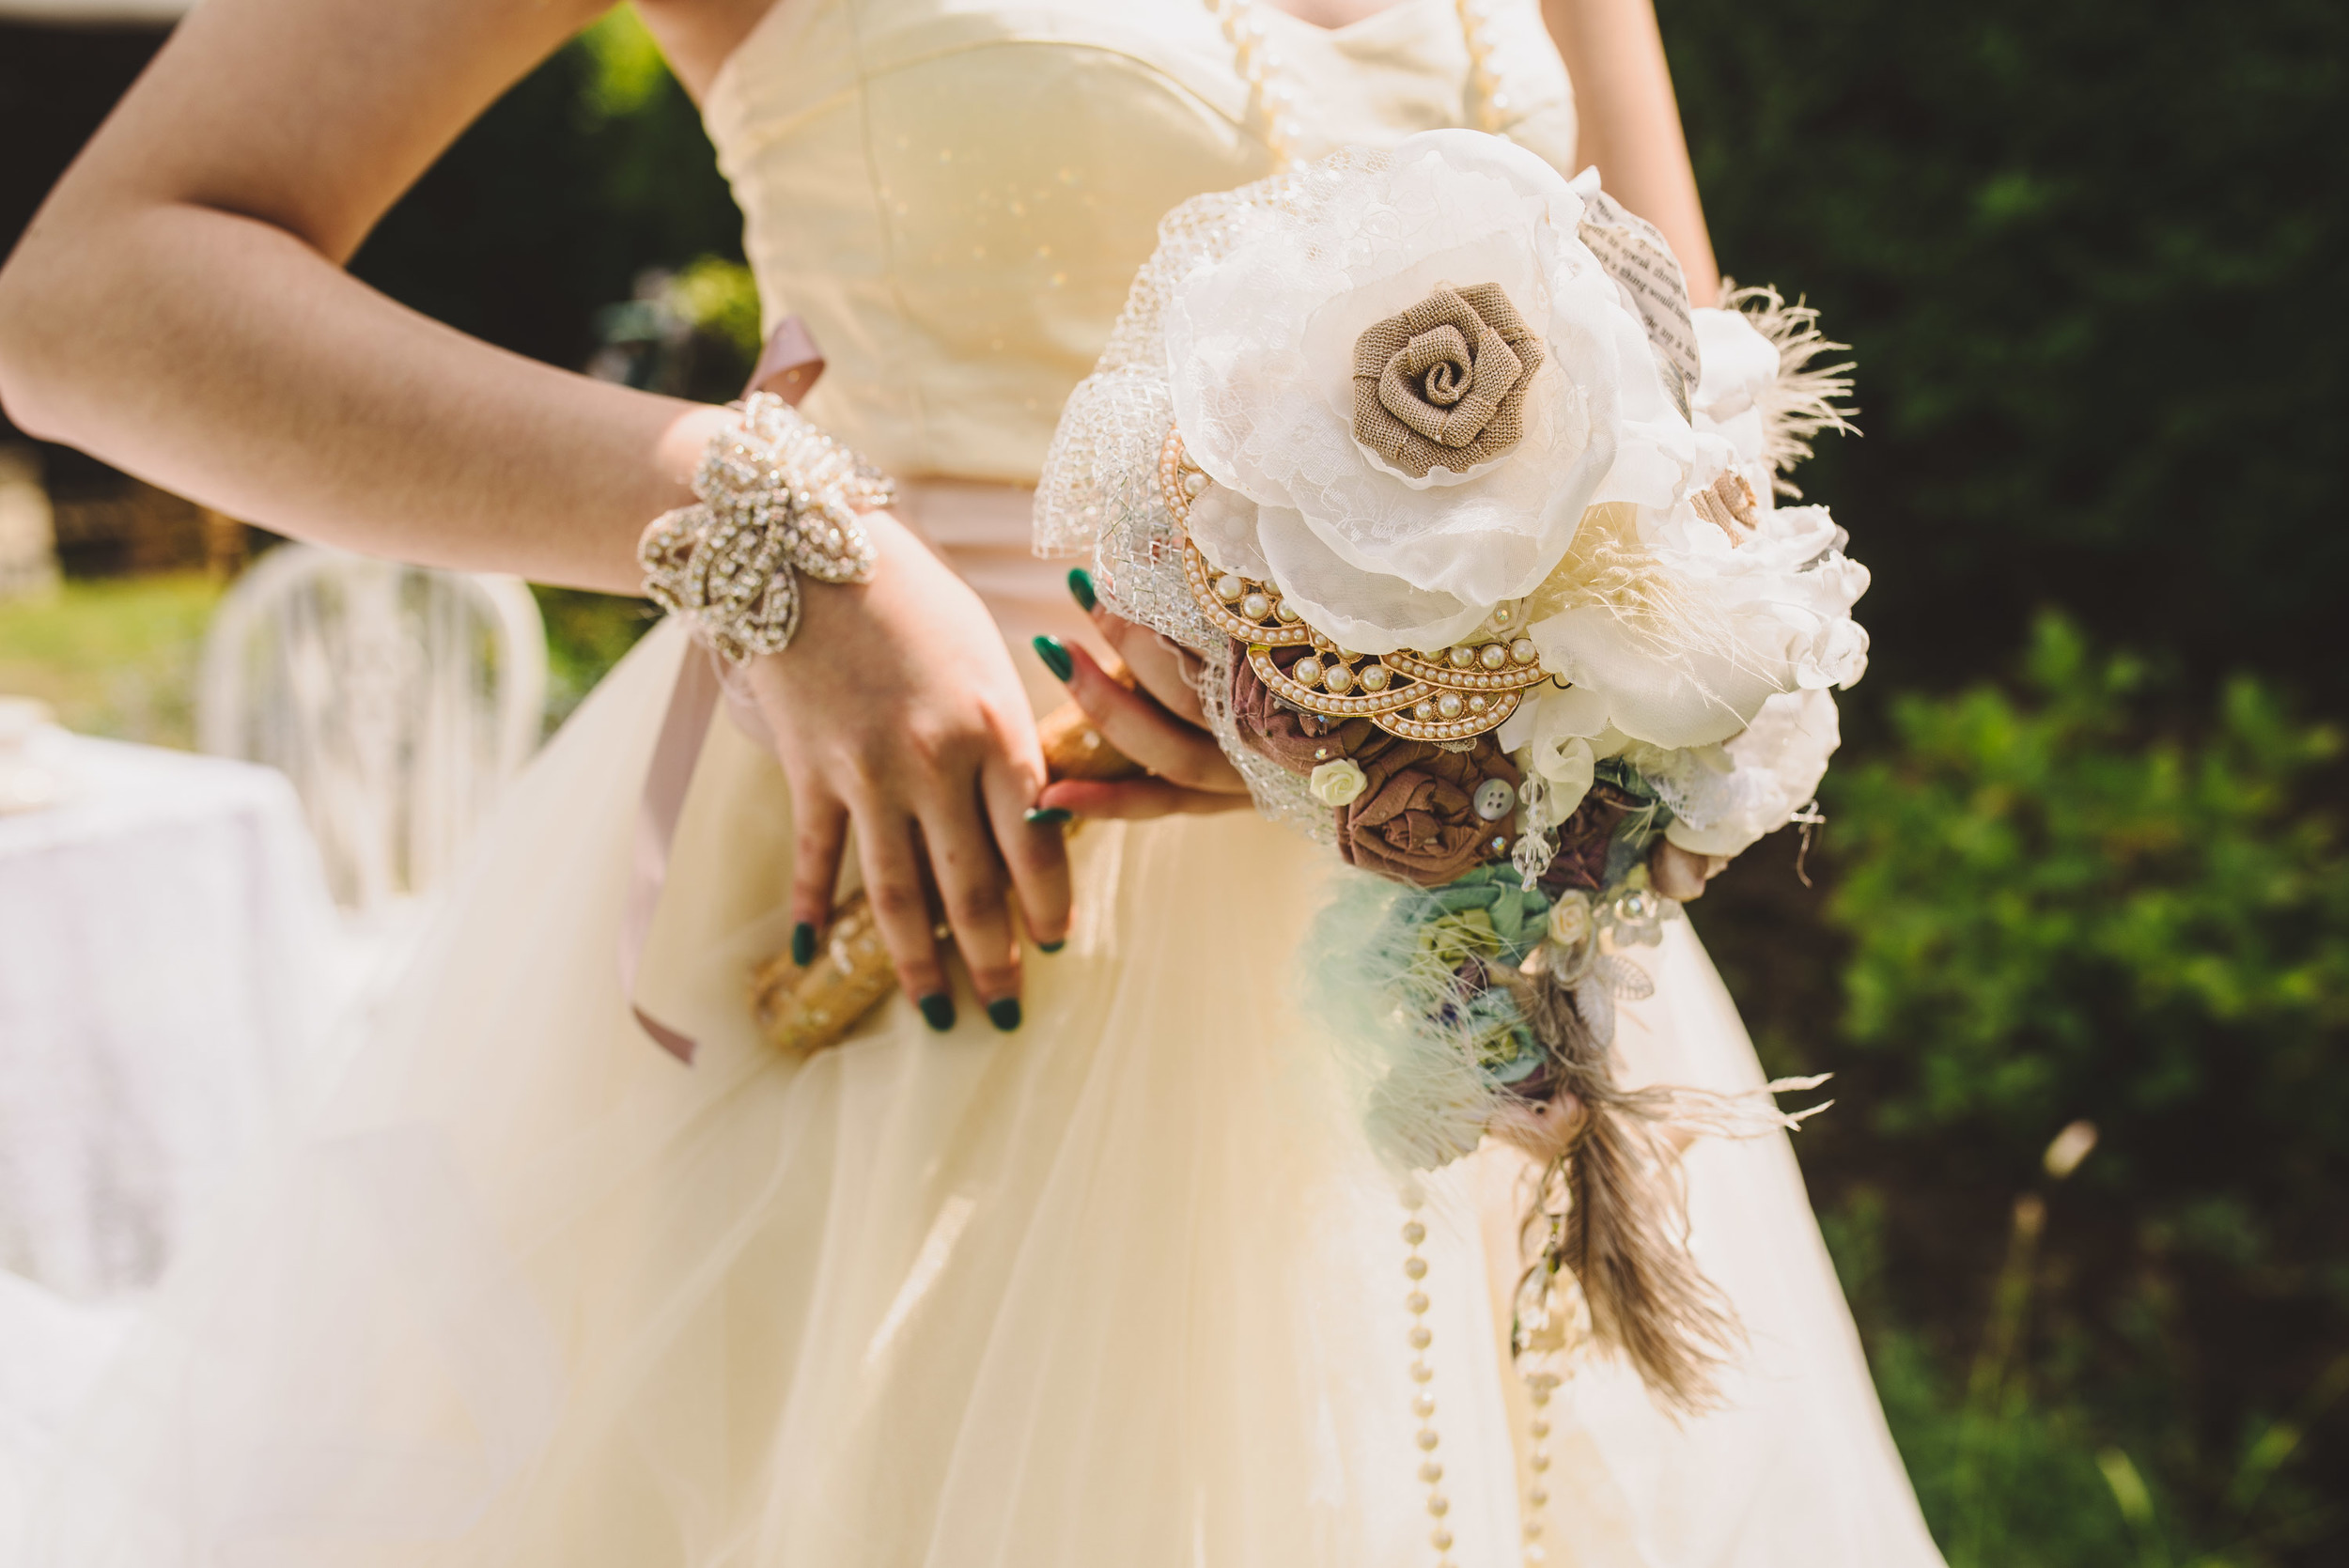 All Bouquets and accessories designed and handmade by Bespoke Vintage Castle. Photo Credit Becky Ryan Photography